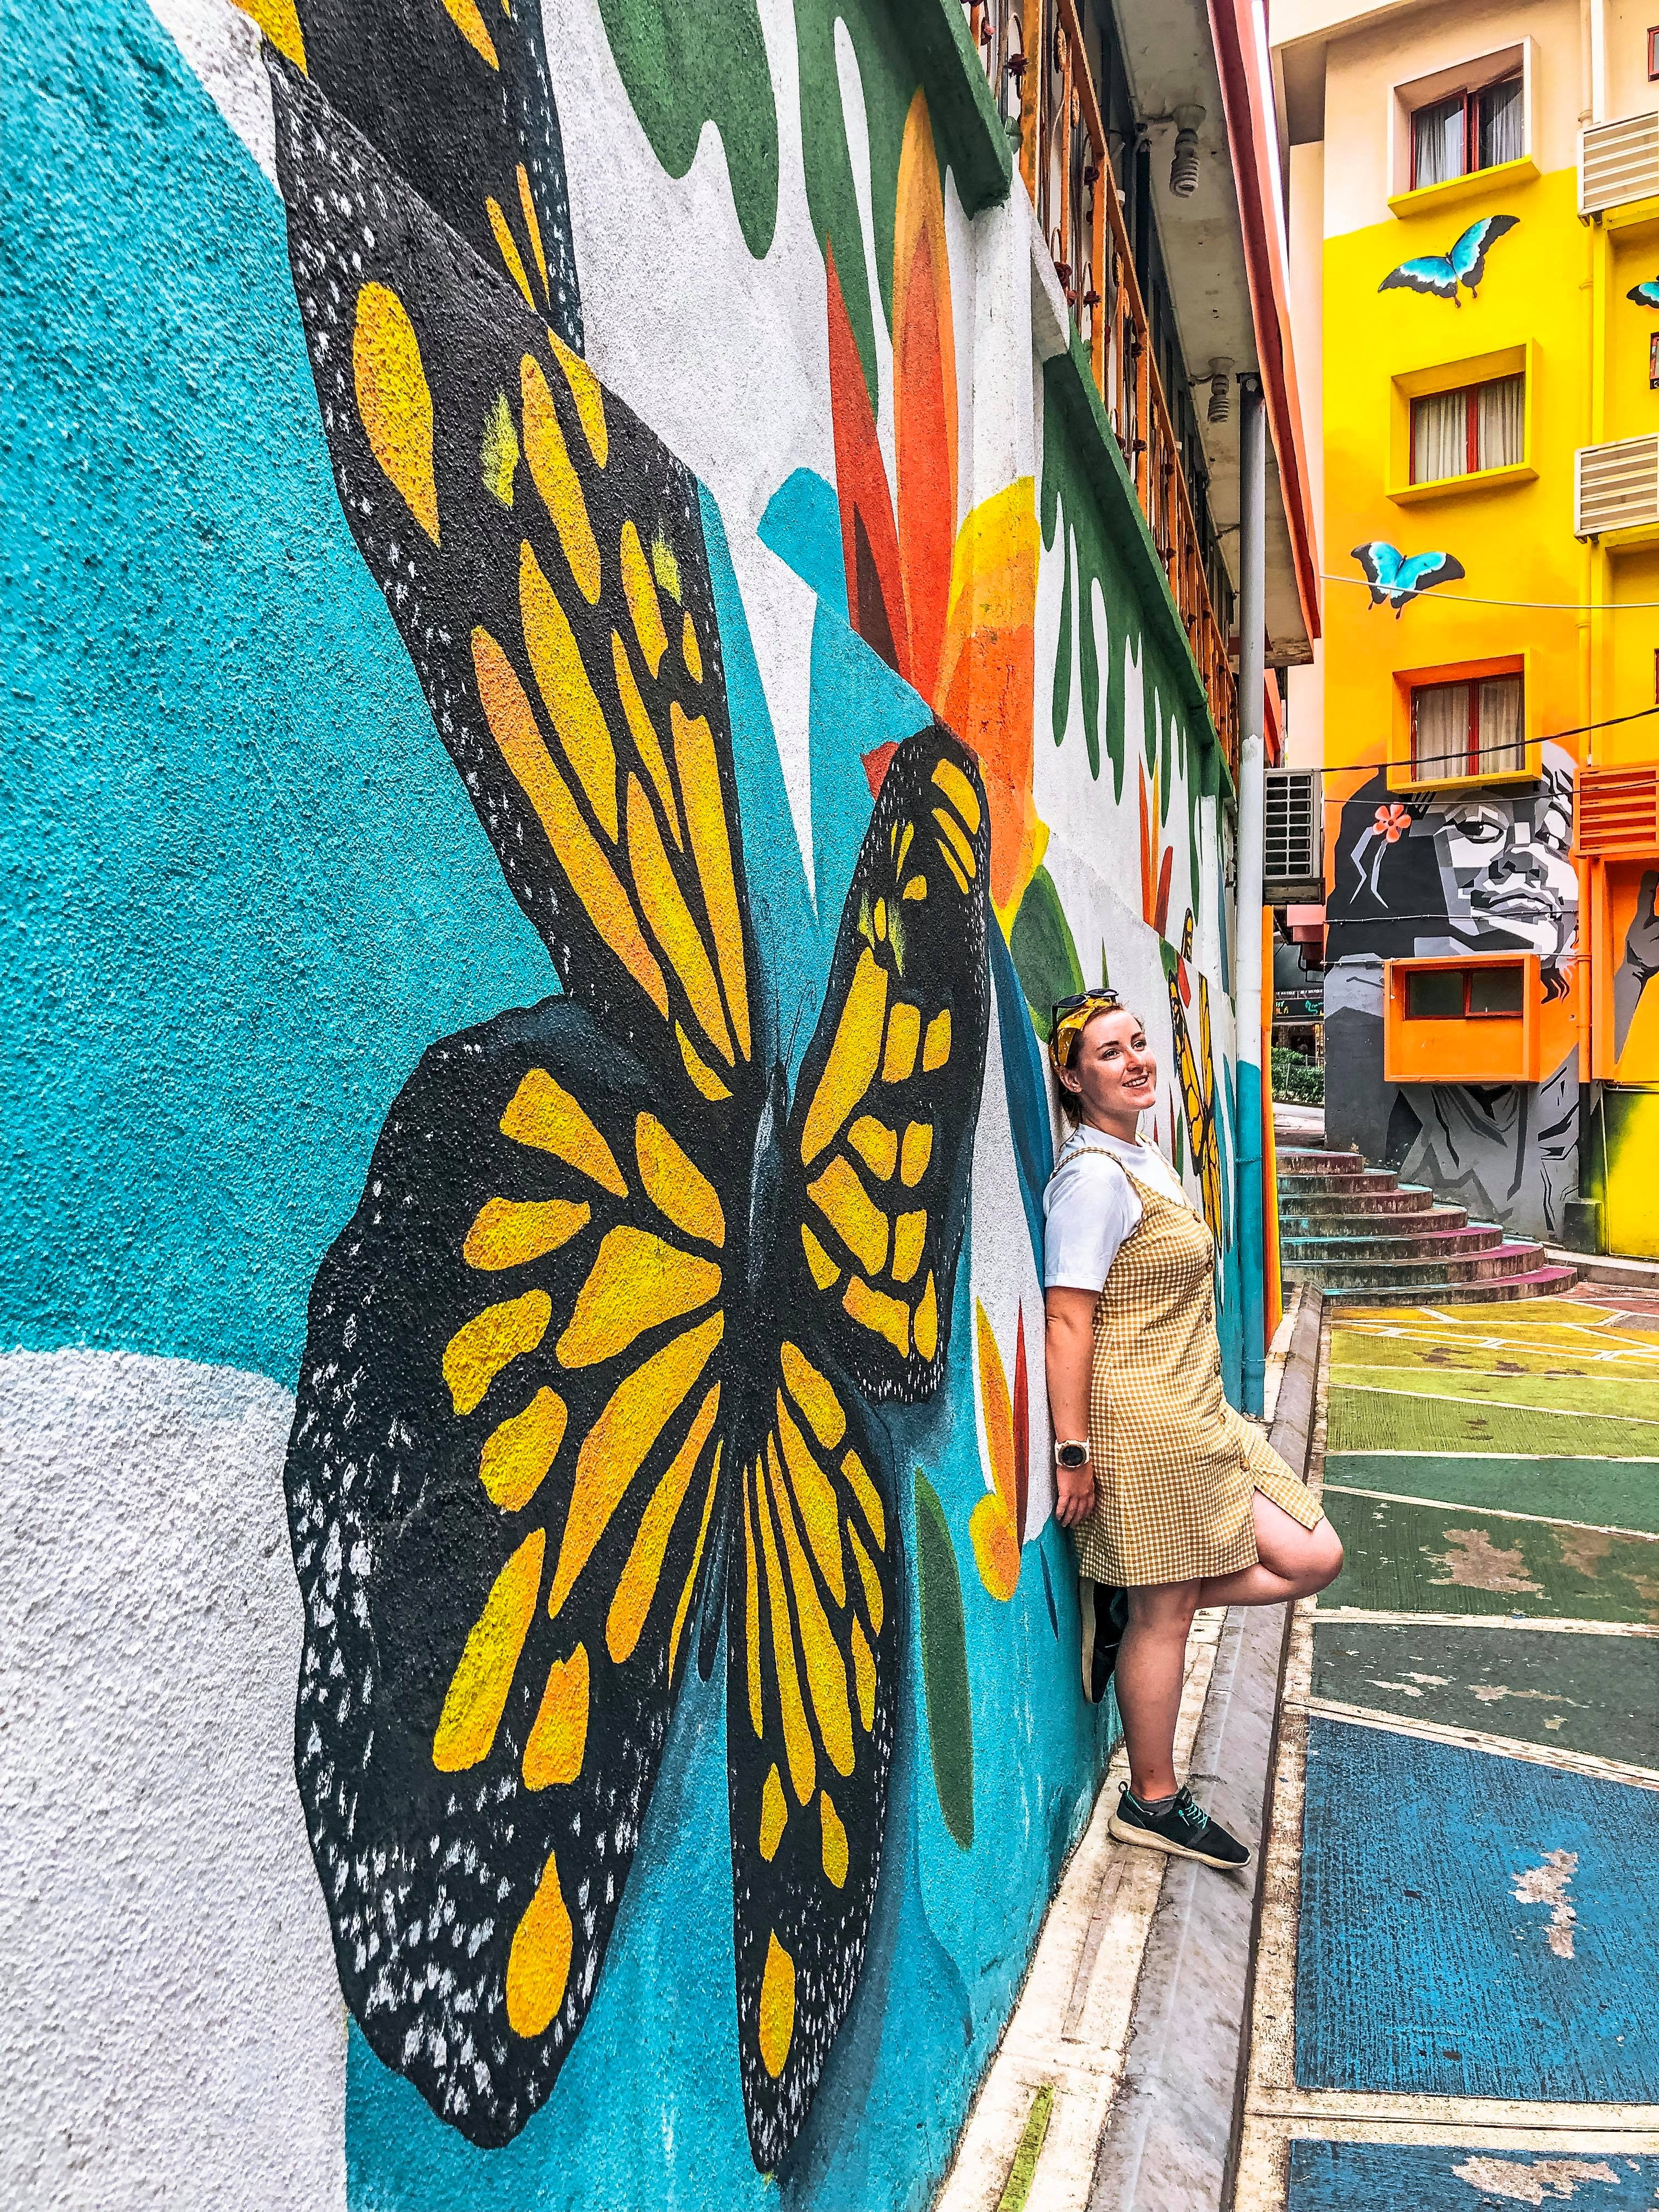 A girl leans against a wall with a giant butterfly on. Lots of rainbows and flower on the surrounding walls.